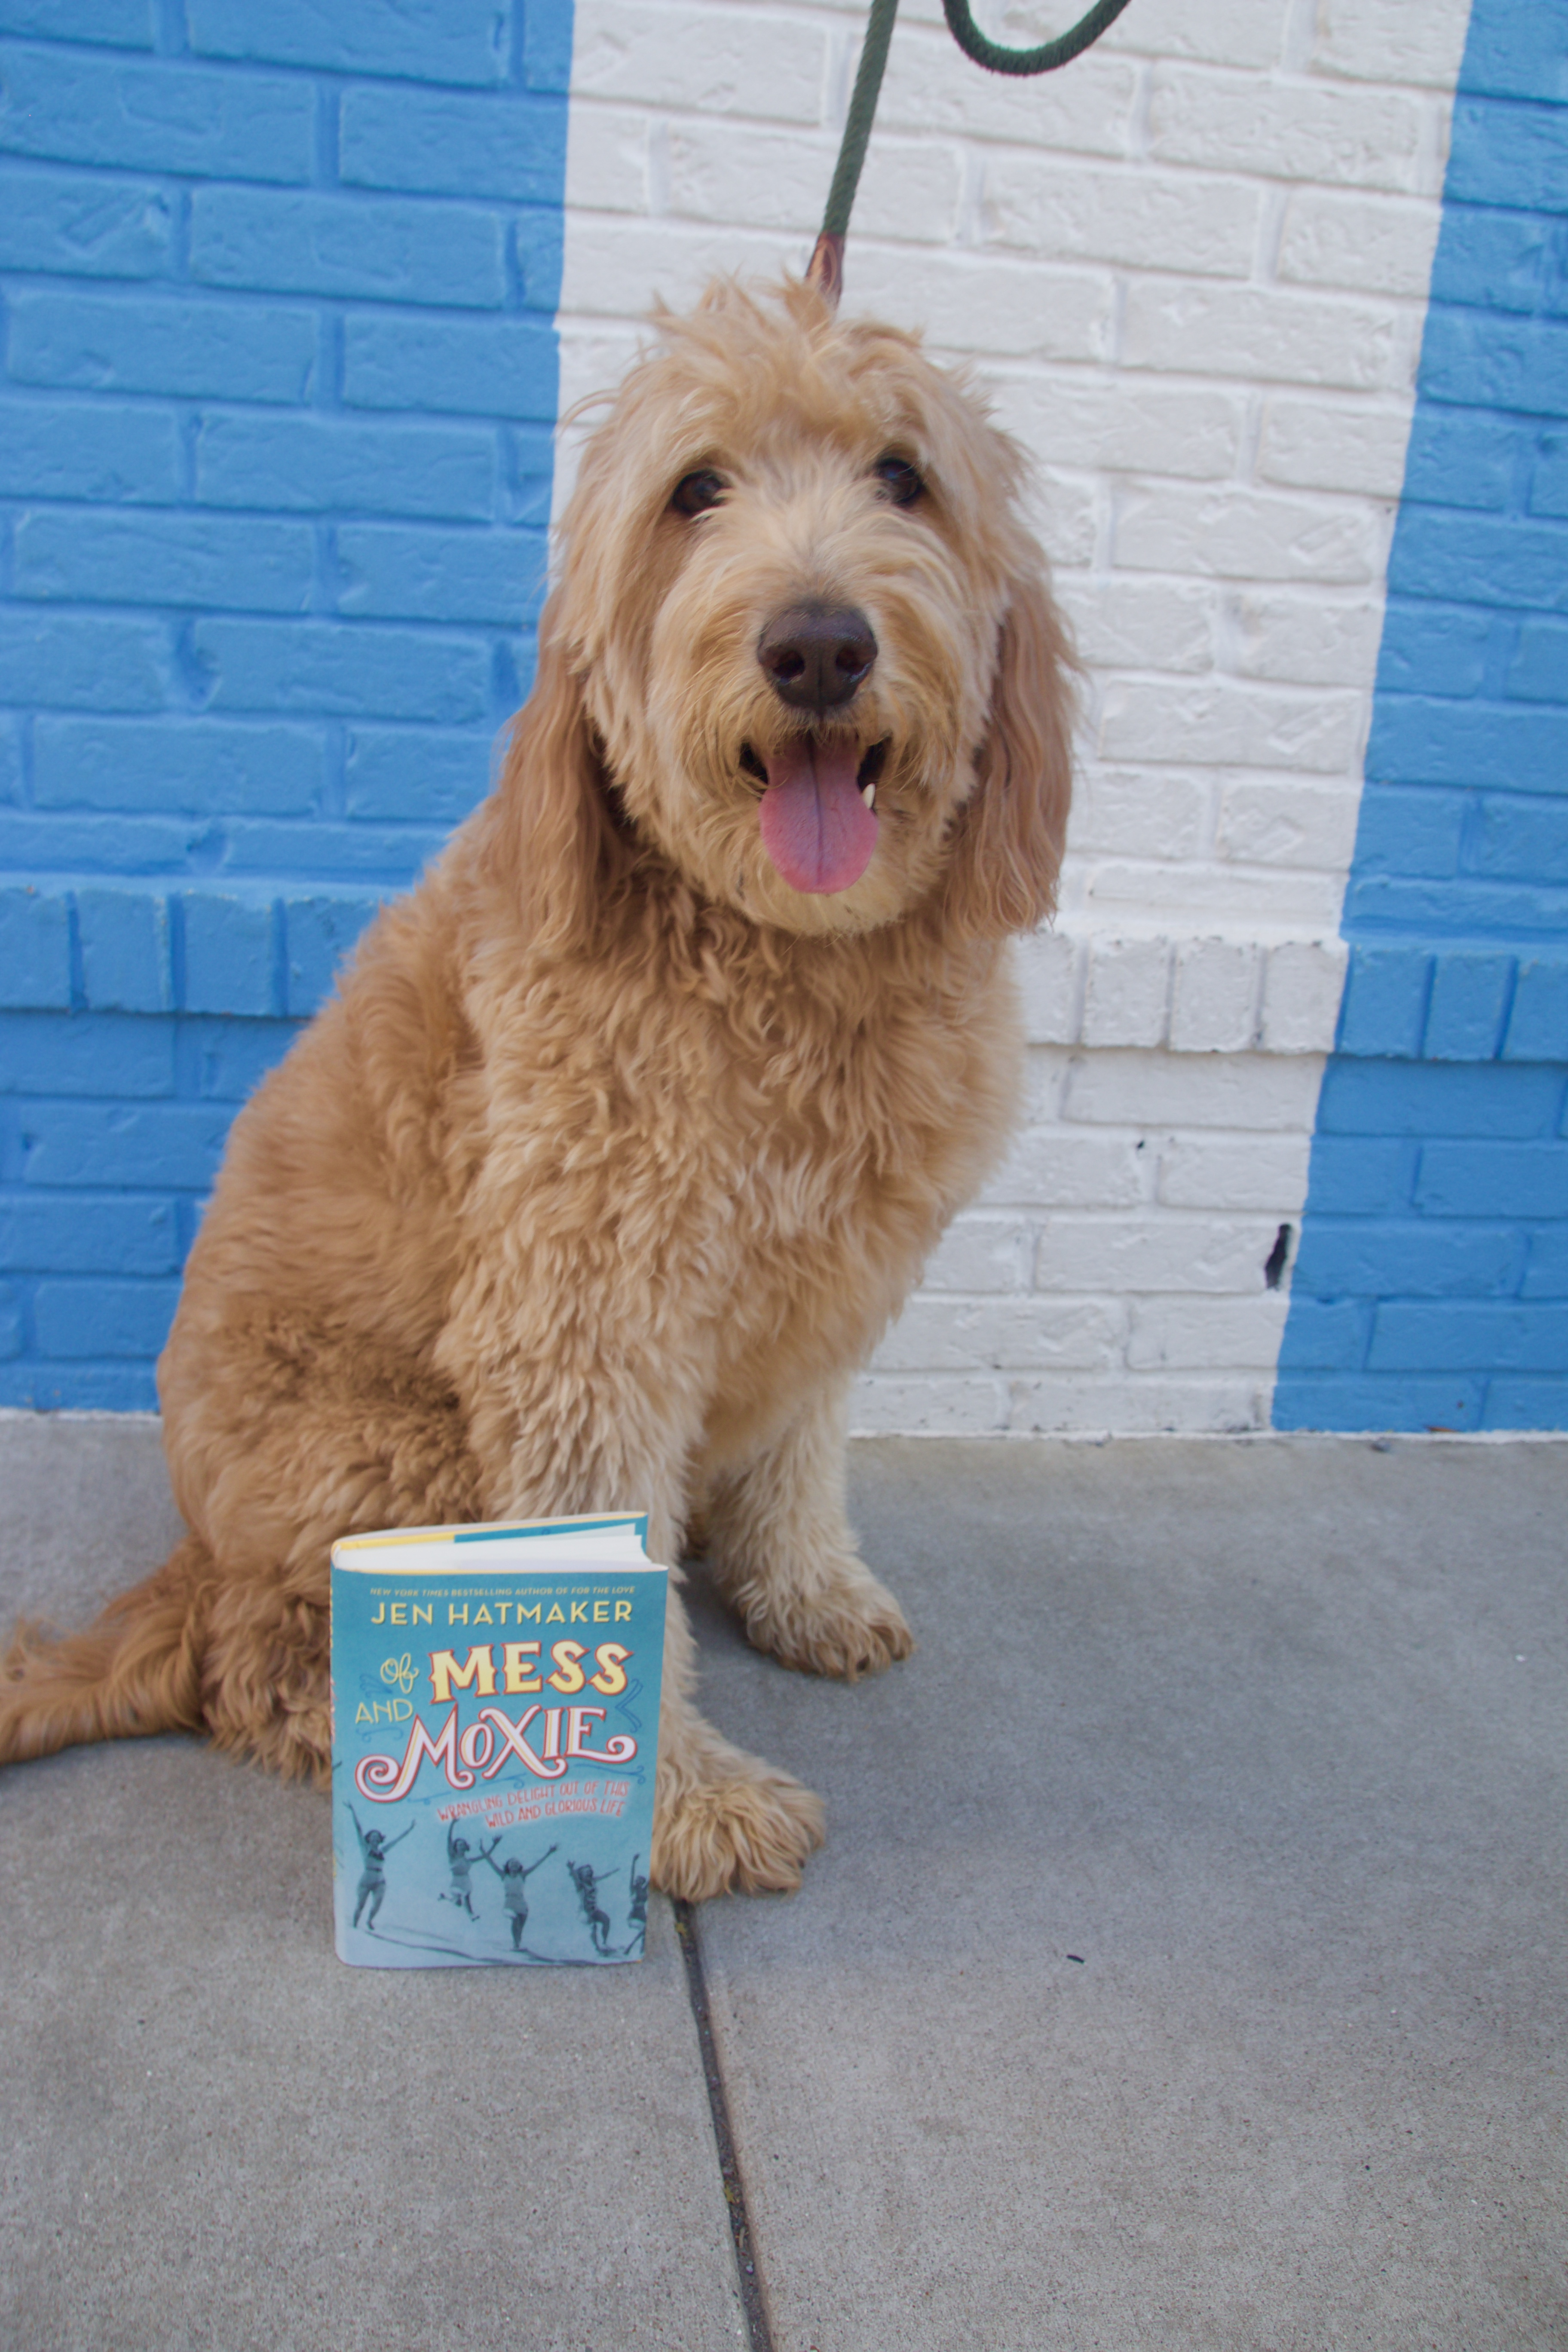 Puppy reviews, puppy book reviews, books with puppies